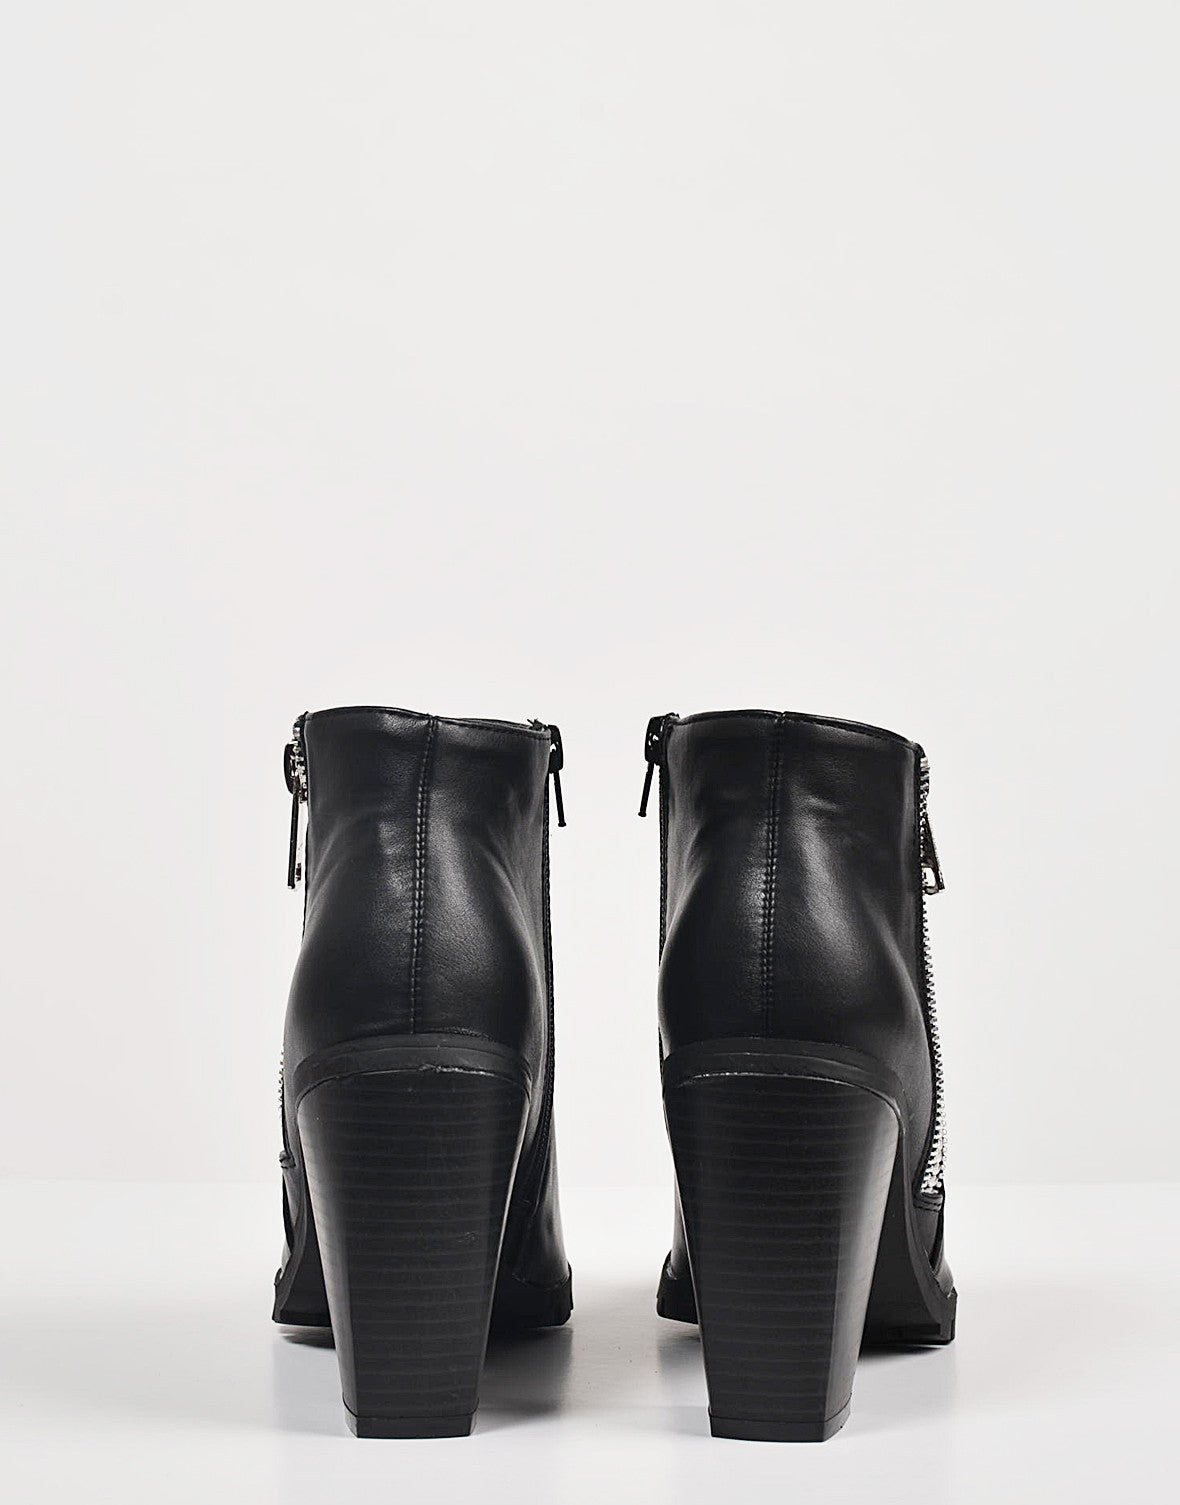 Back View of Ridged Sole Zippered Ankle Boots